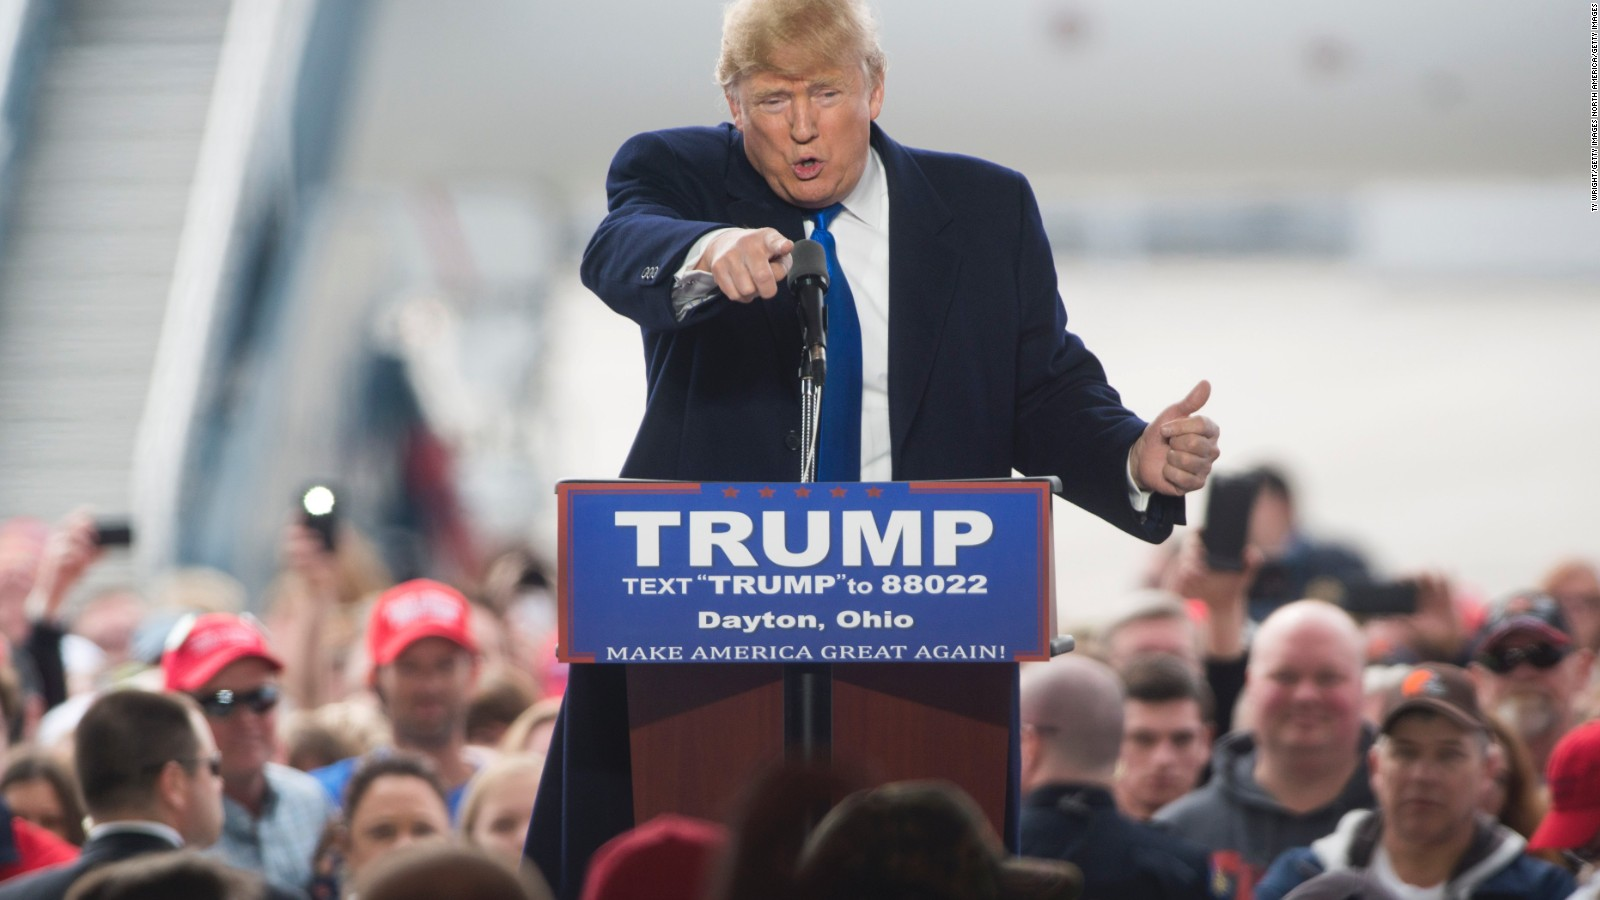 Trump Is A Bully Says Man Who Rushed Stage Cnnpolitics